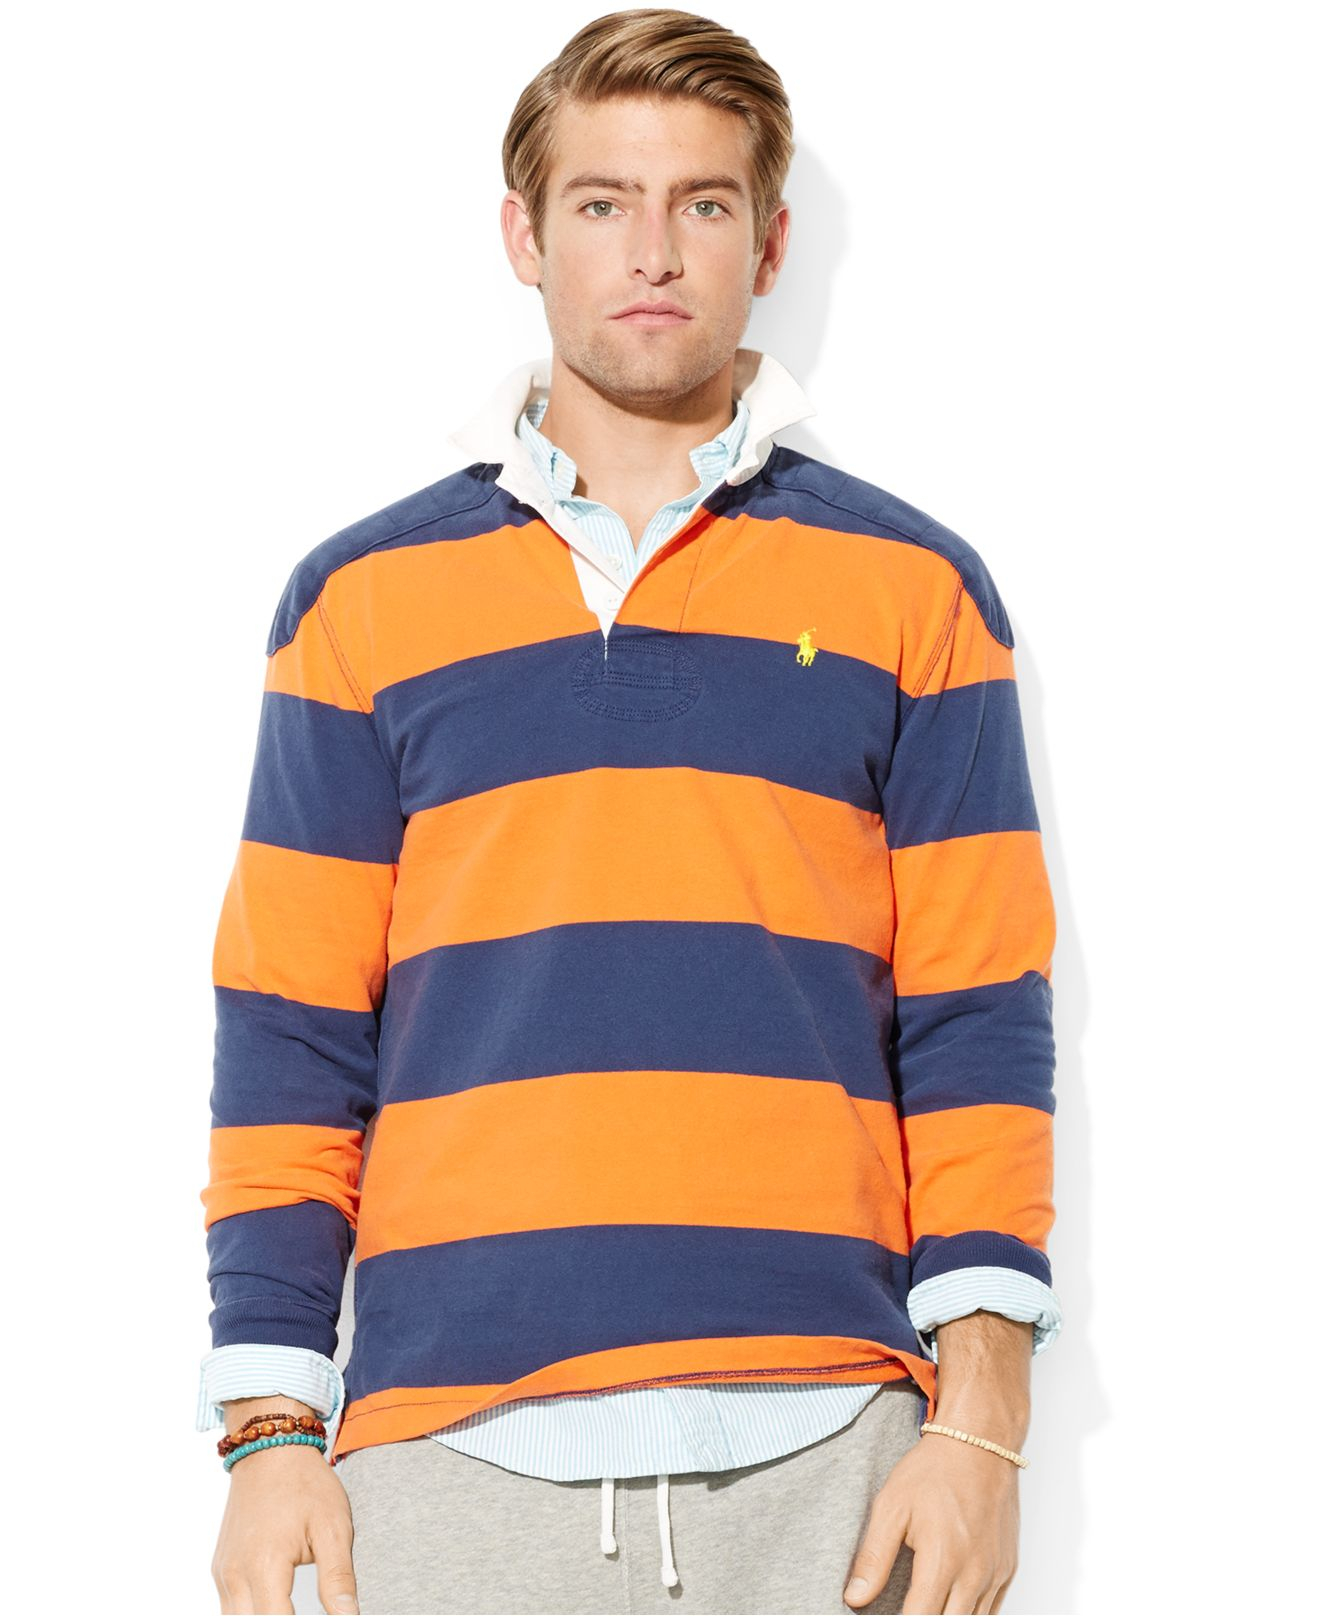 649762d9accf3 Gallery. Gallery. Lyst Polo Ralph Lauren Striped Rugby Shirt ...